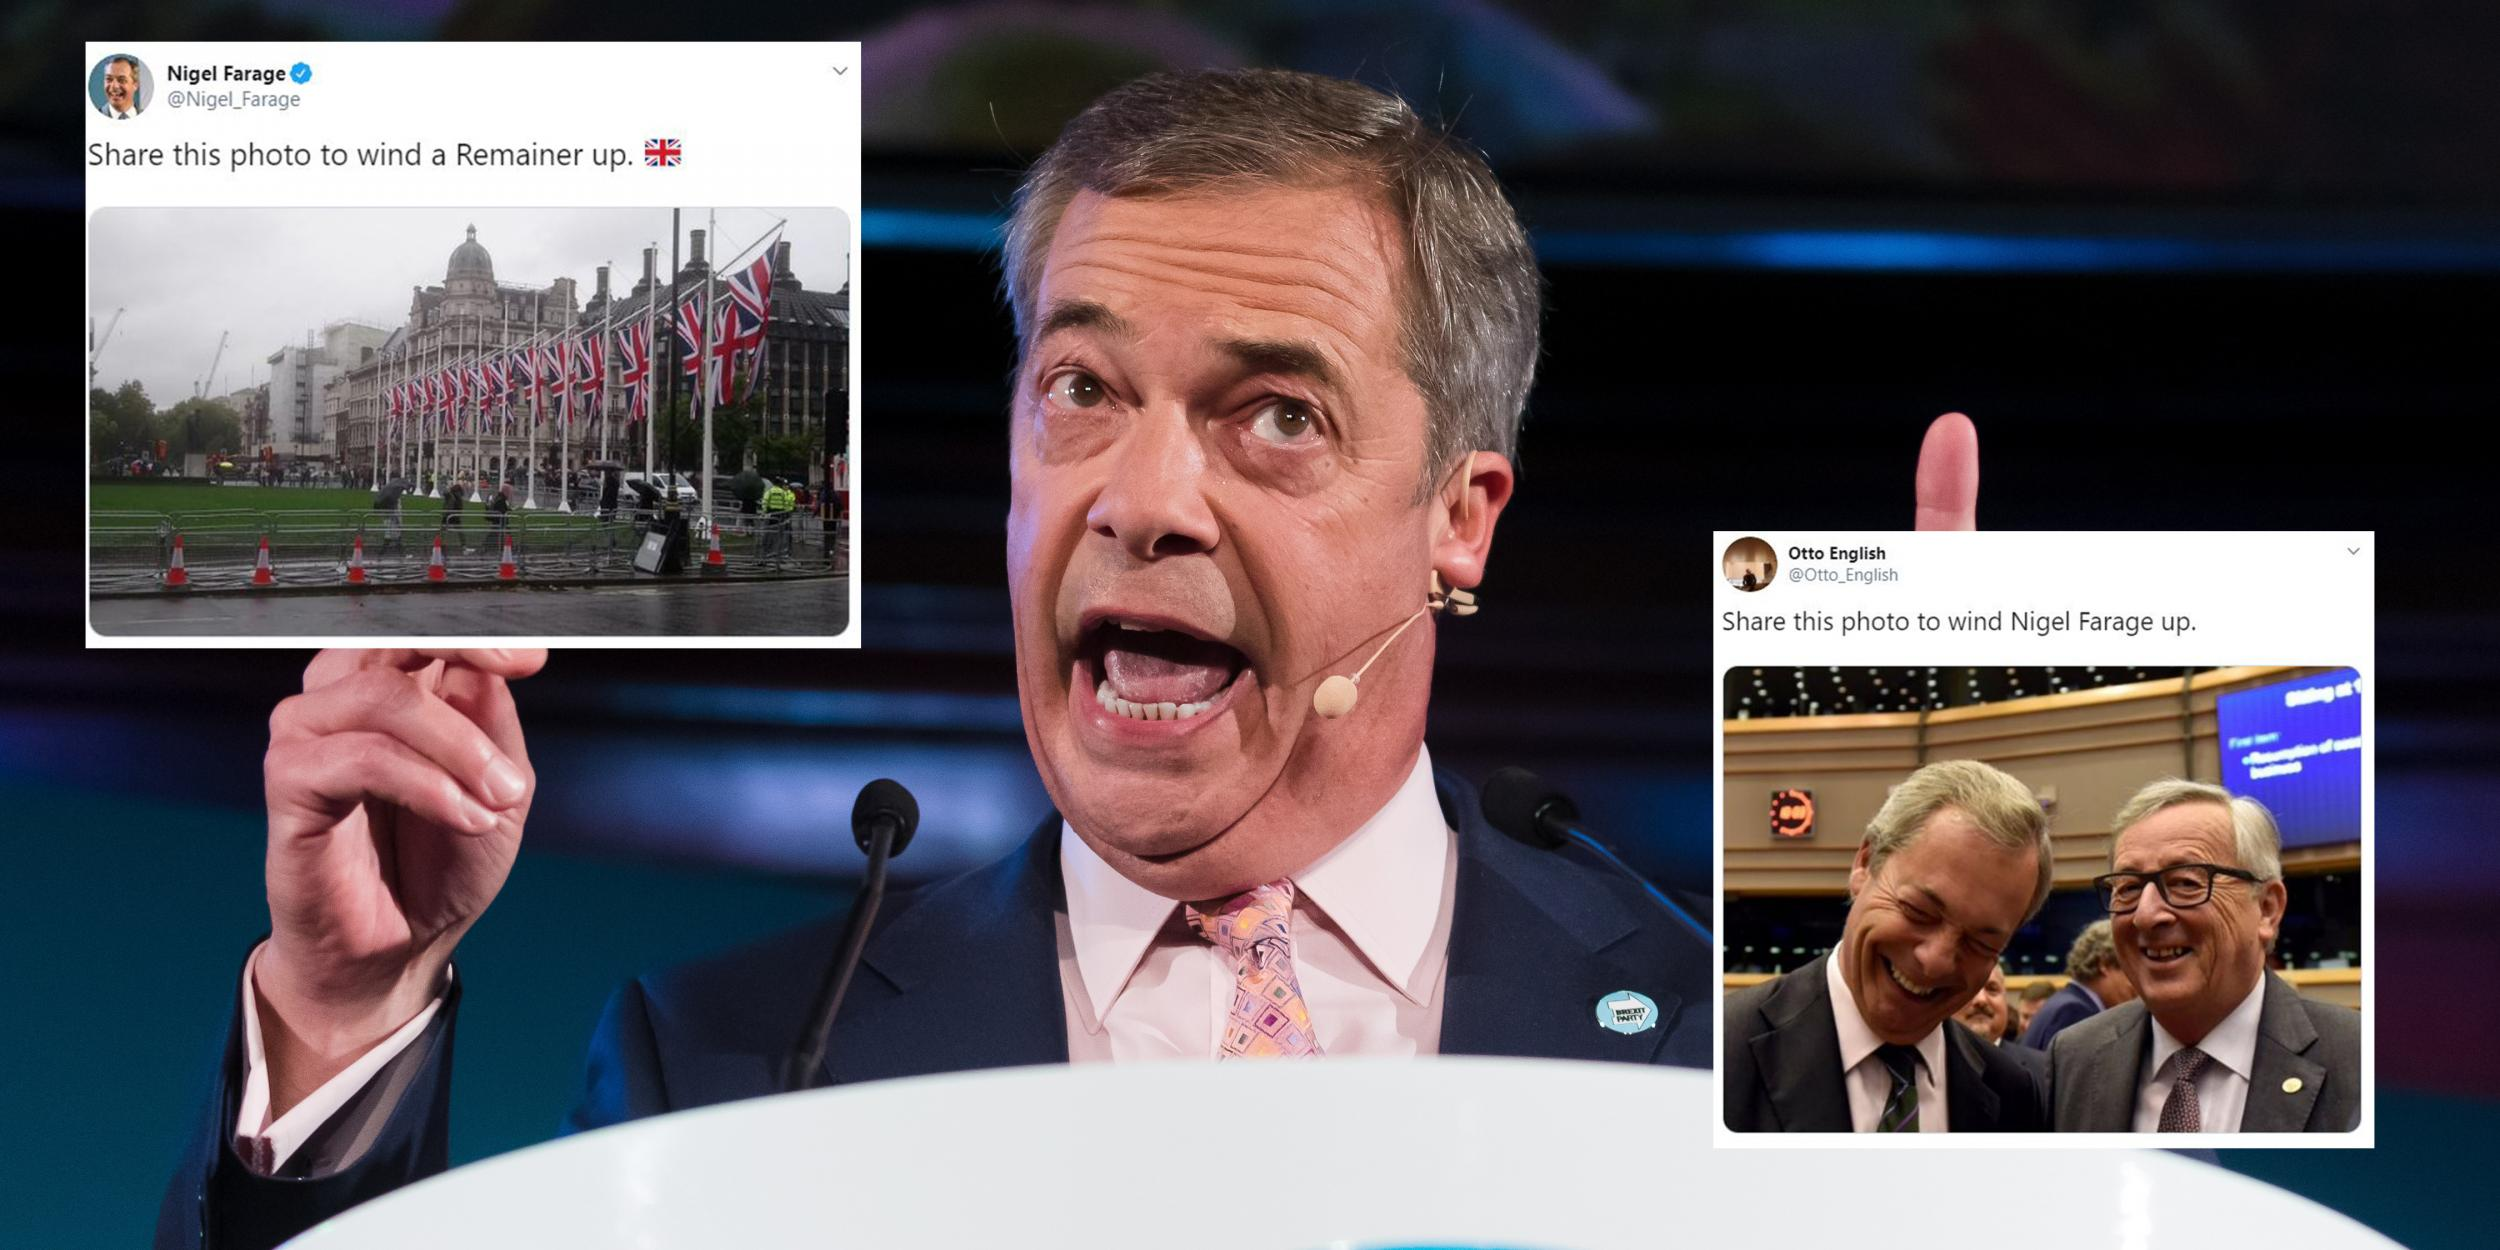 Nigel Farage shared a picture 'to wind up Remainers' and it backfired badly